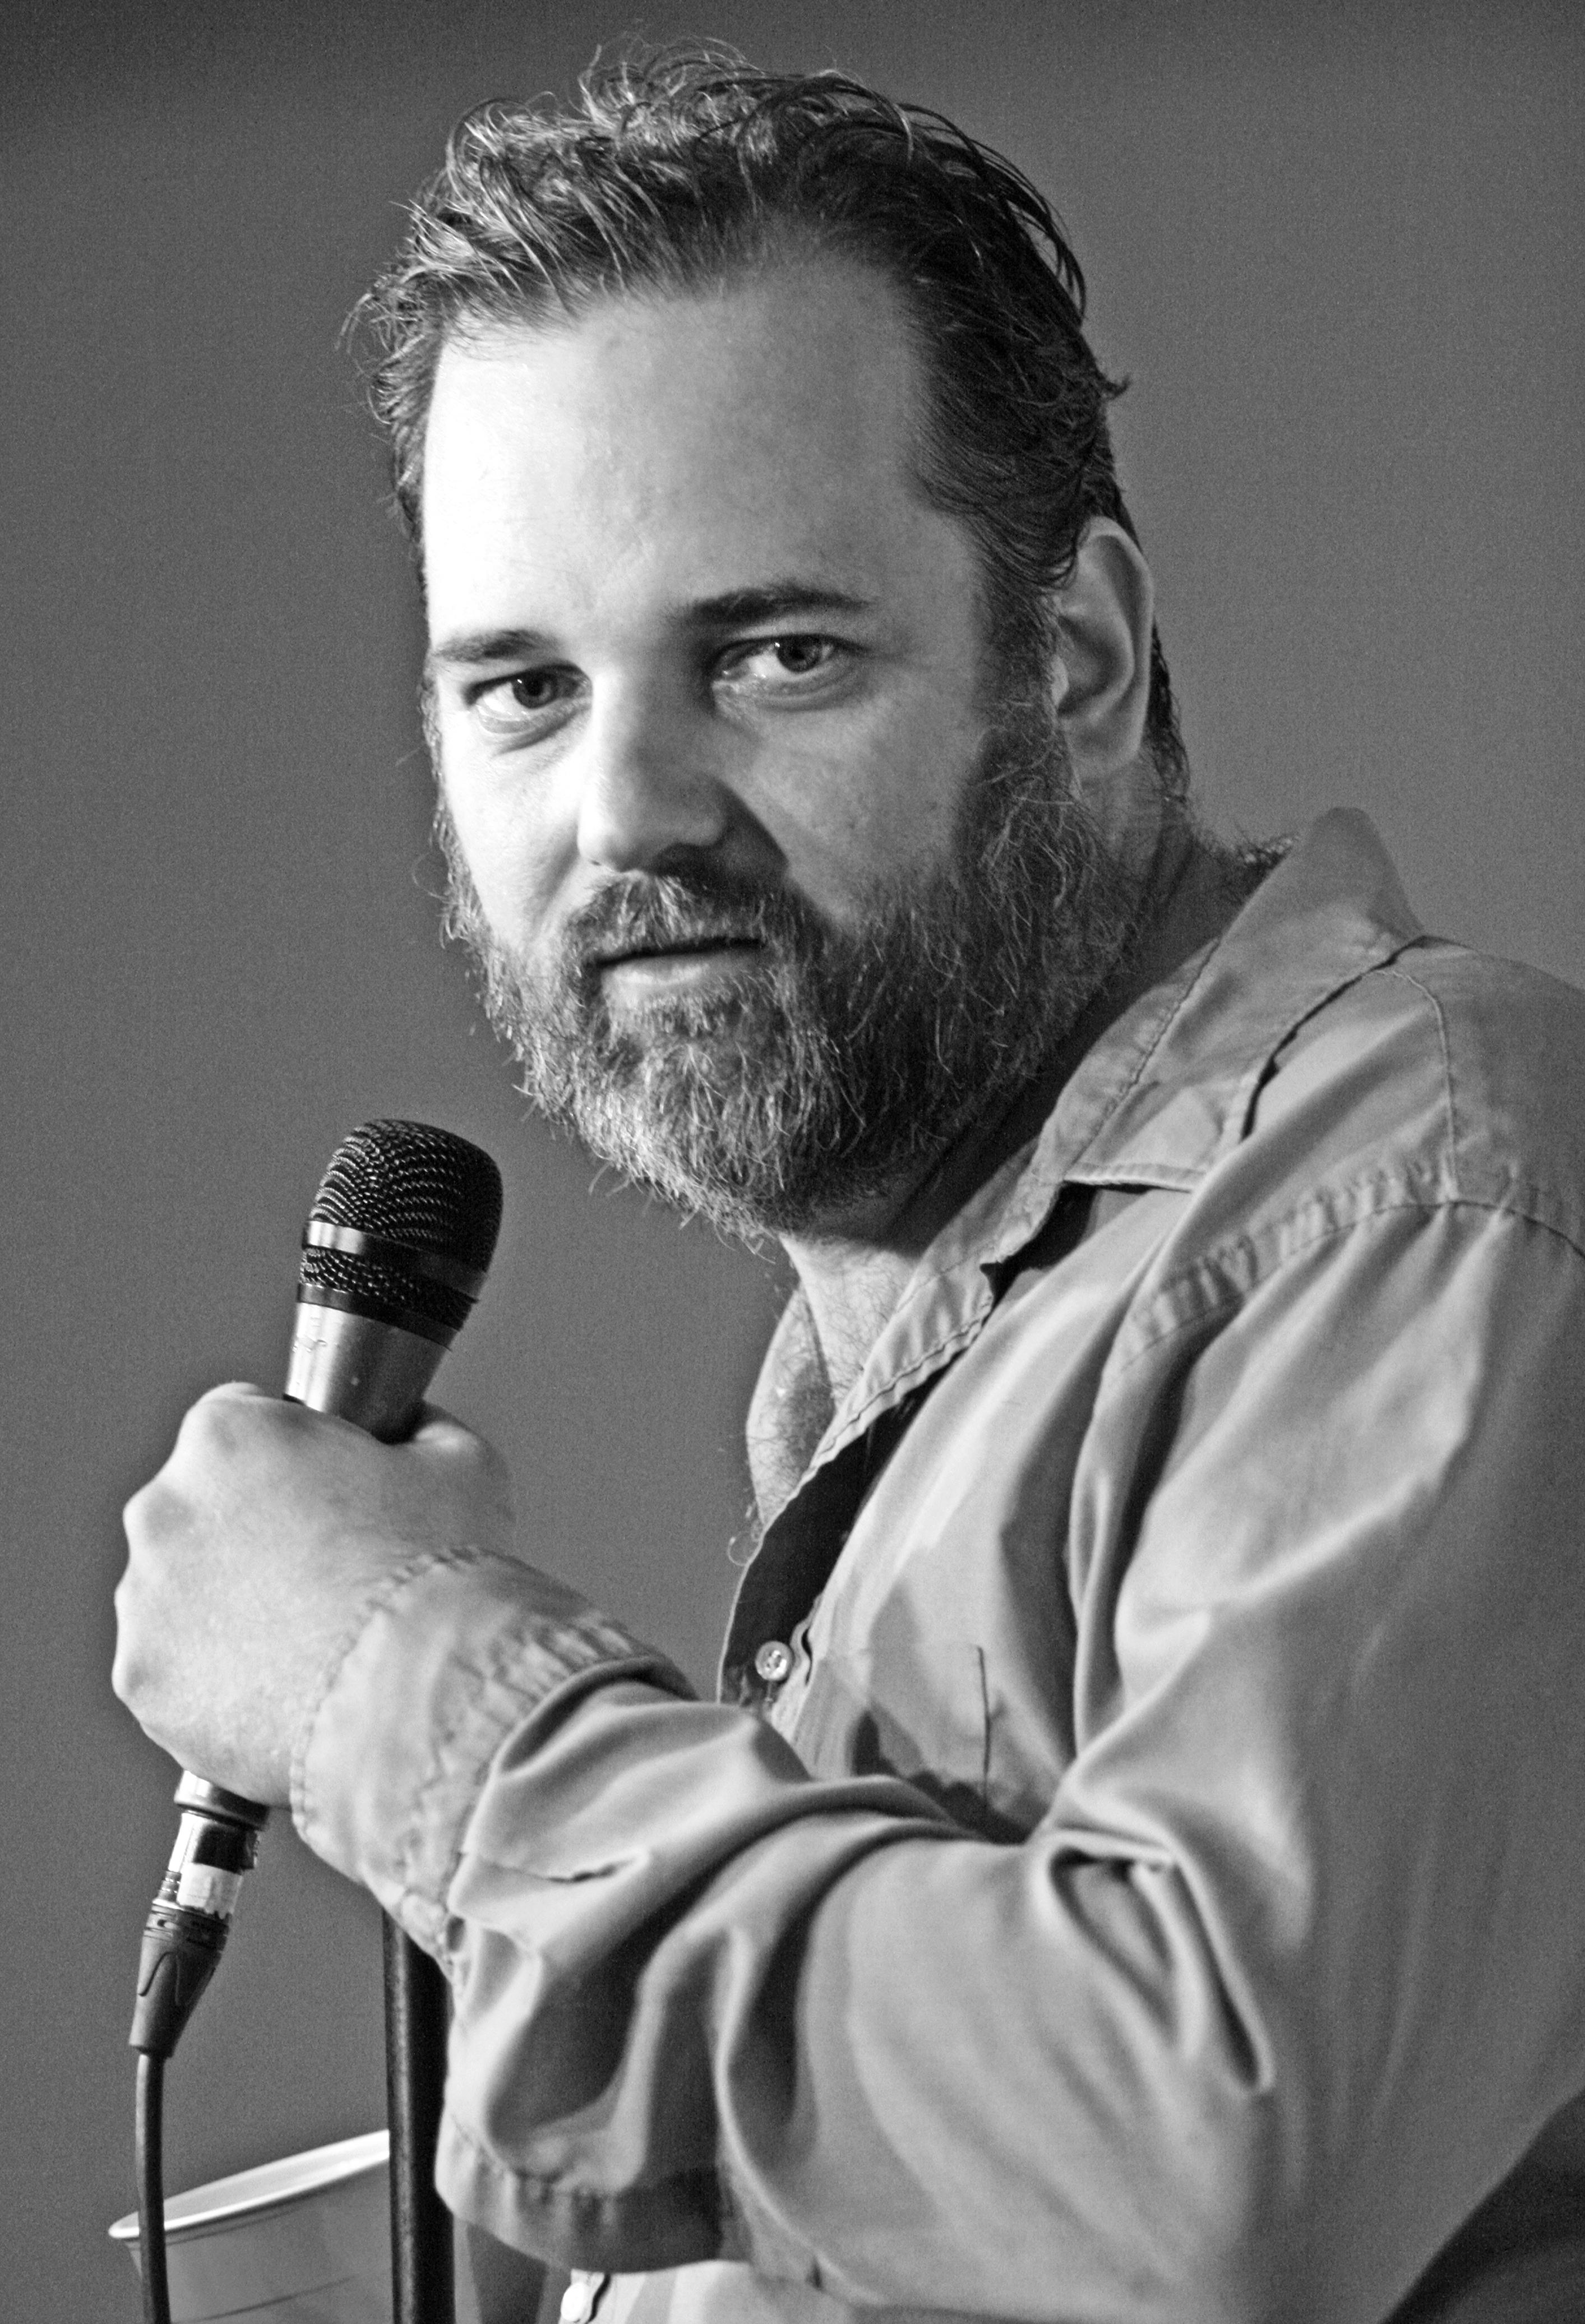 He likes to talk: extended Dan Harmon interview